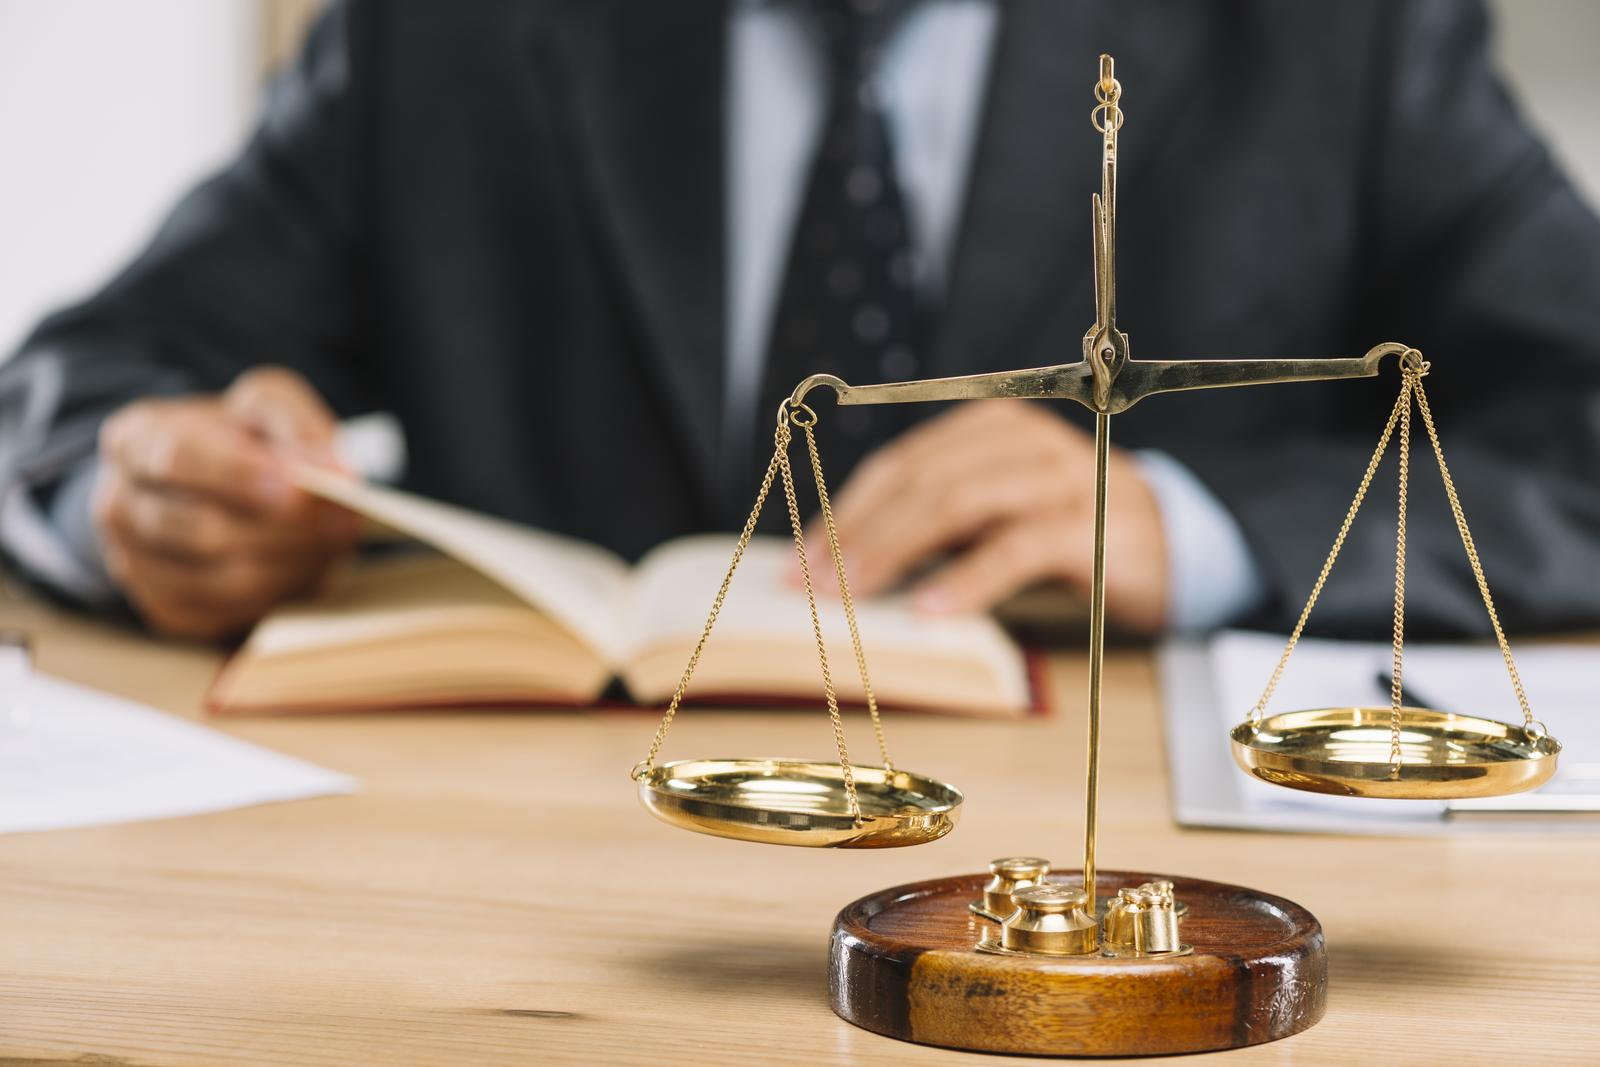 Activities of legal counsels and law offices in Tallinn